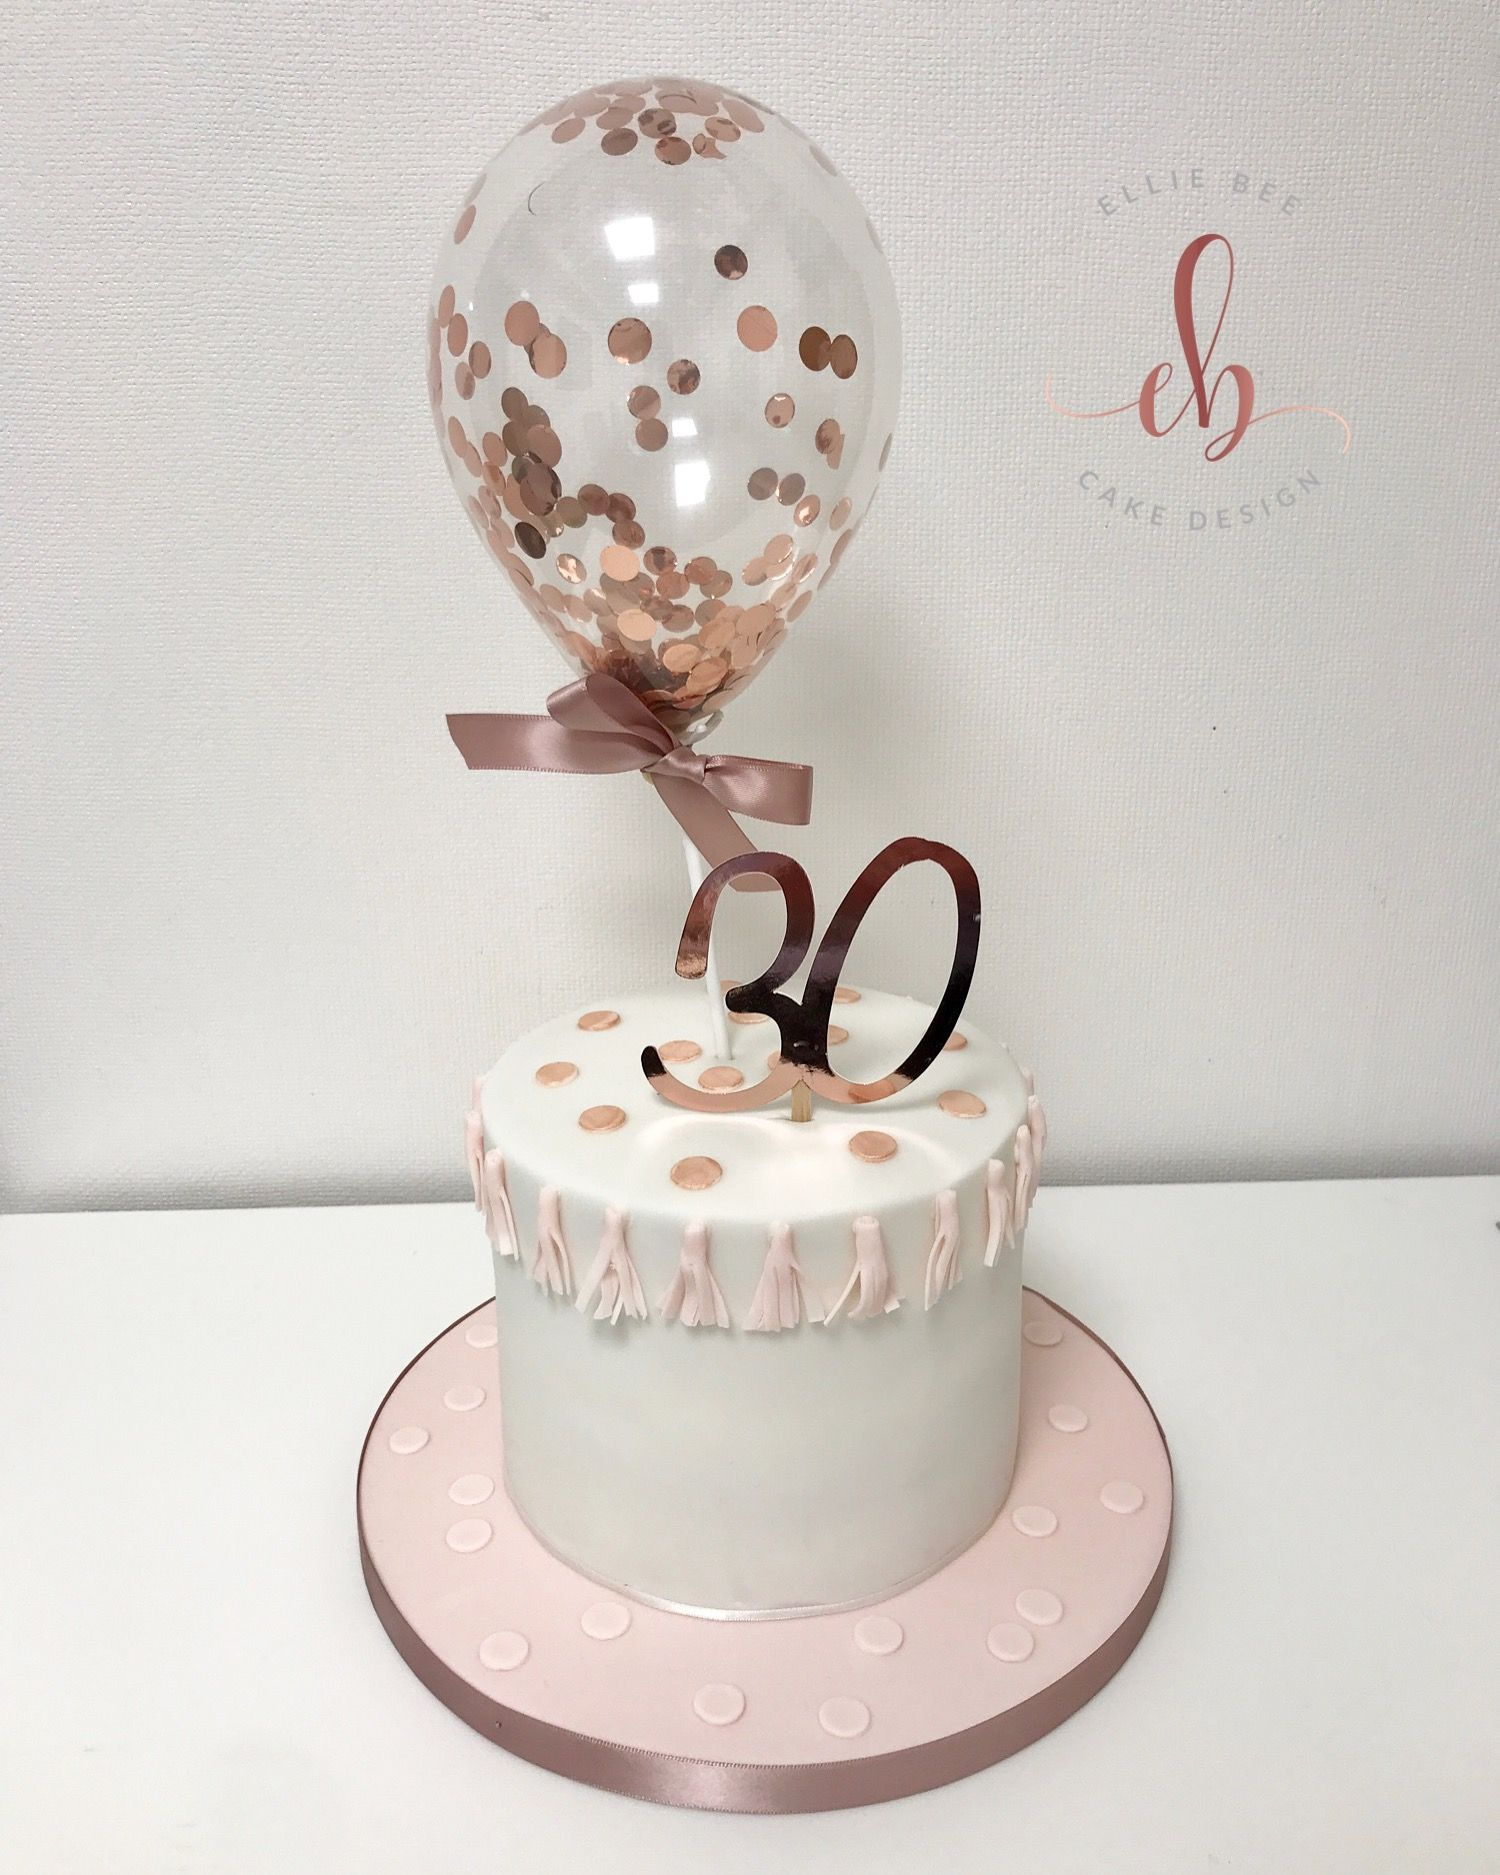 Astonishing Confetti Balloon Cake With Tassels Rose Gold And Pink Funny Birthday Cards Online Elaedamsfinfo